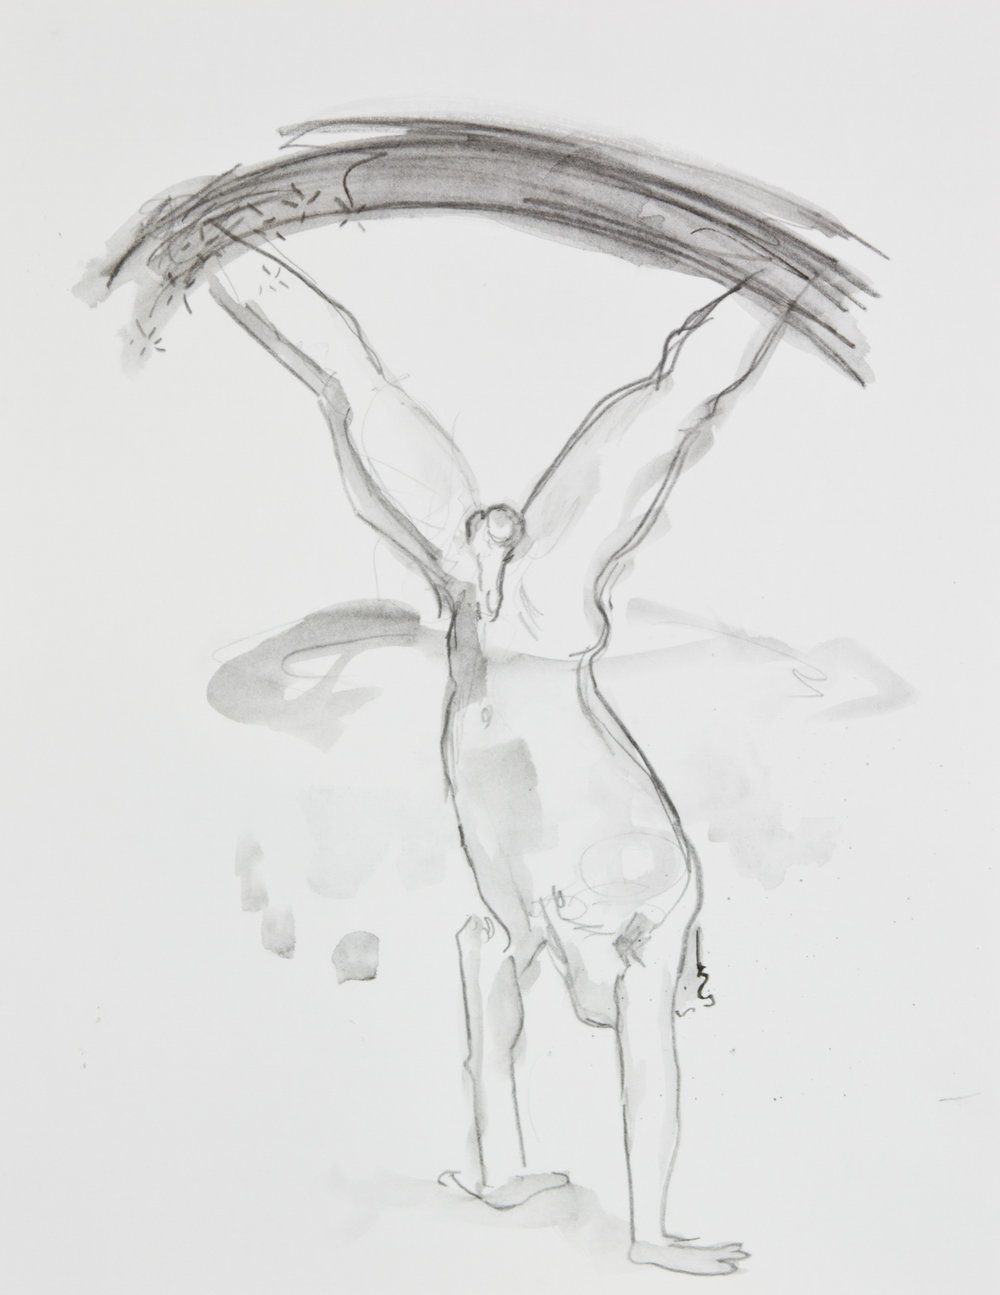 Flip And Hang From Nowhere, 2013, graphite on paper, 11x14 inches